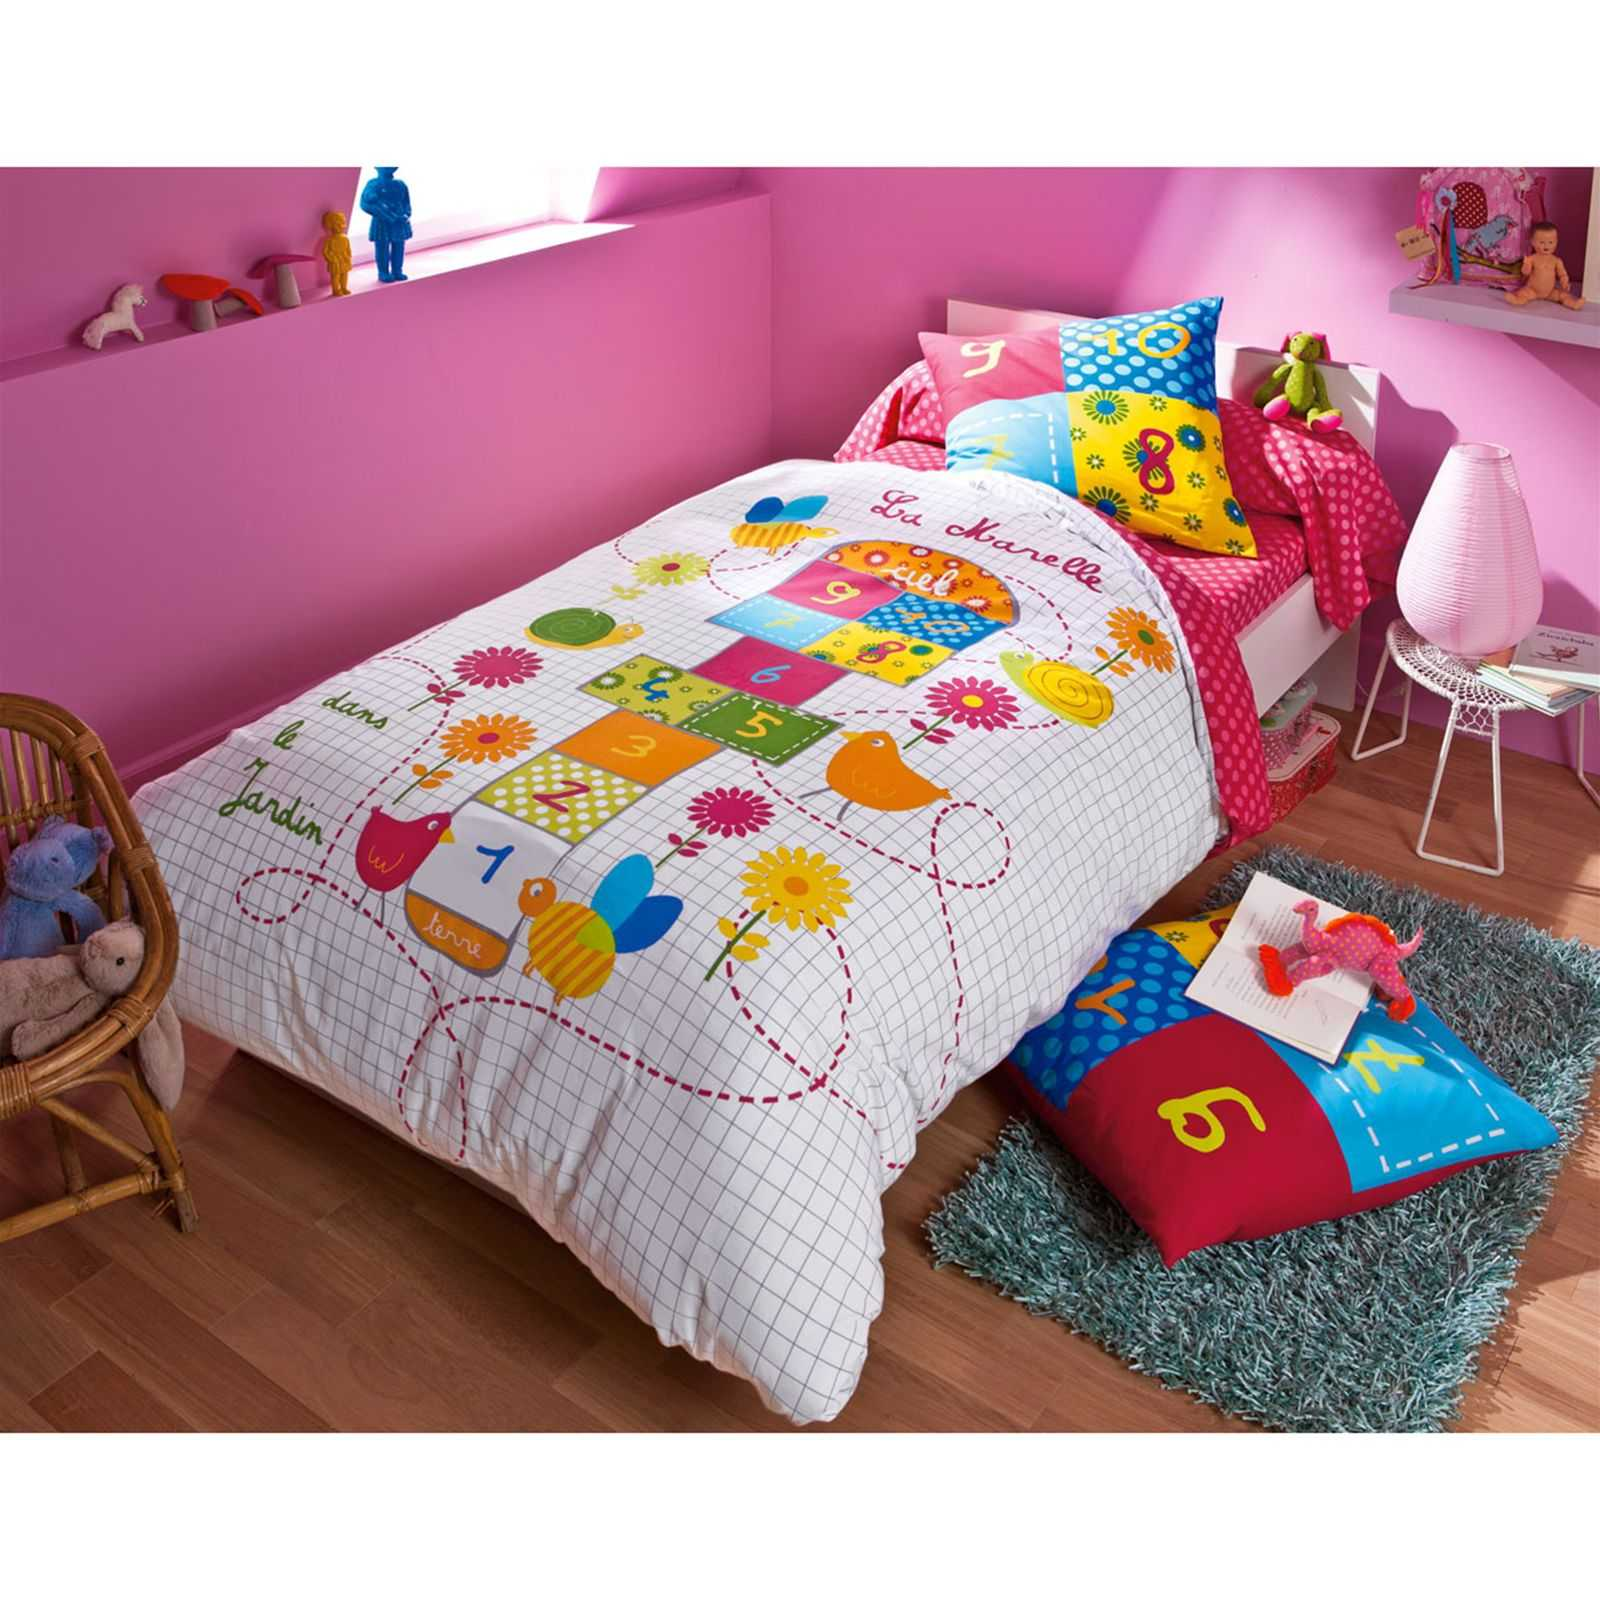 becquet housse de couette enfant marelle multicolore brandalley. Black Bedroom Furniture Sets. Home Design Ideas